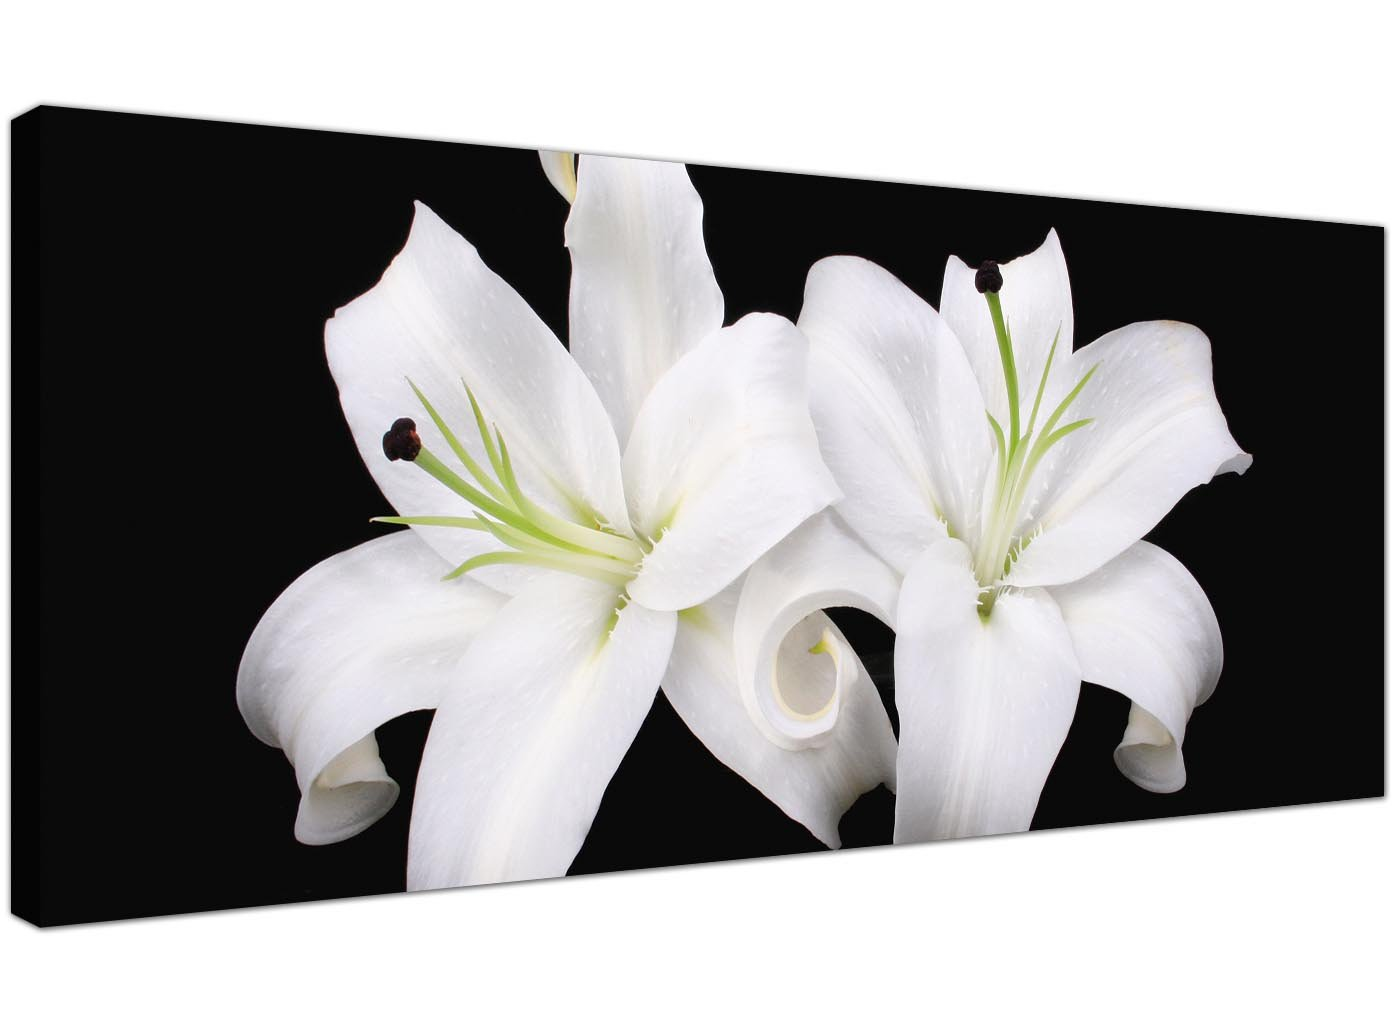 Wallfillers large black and white canvas prints of lily flowers wallfillers large black and white canvas prints of lily flowers trendy floral wall art 1128 amazon kitchen home mightylinksfo